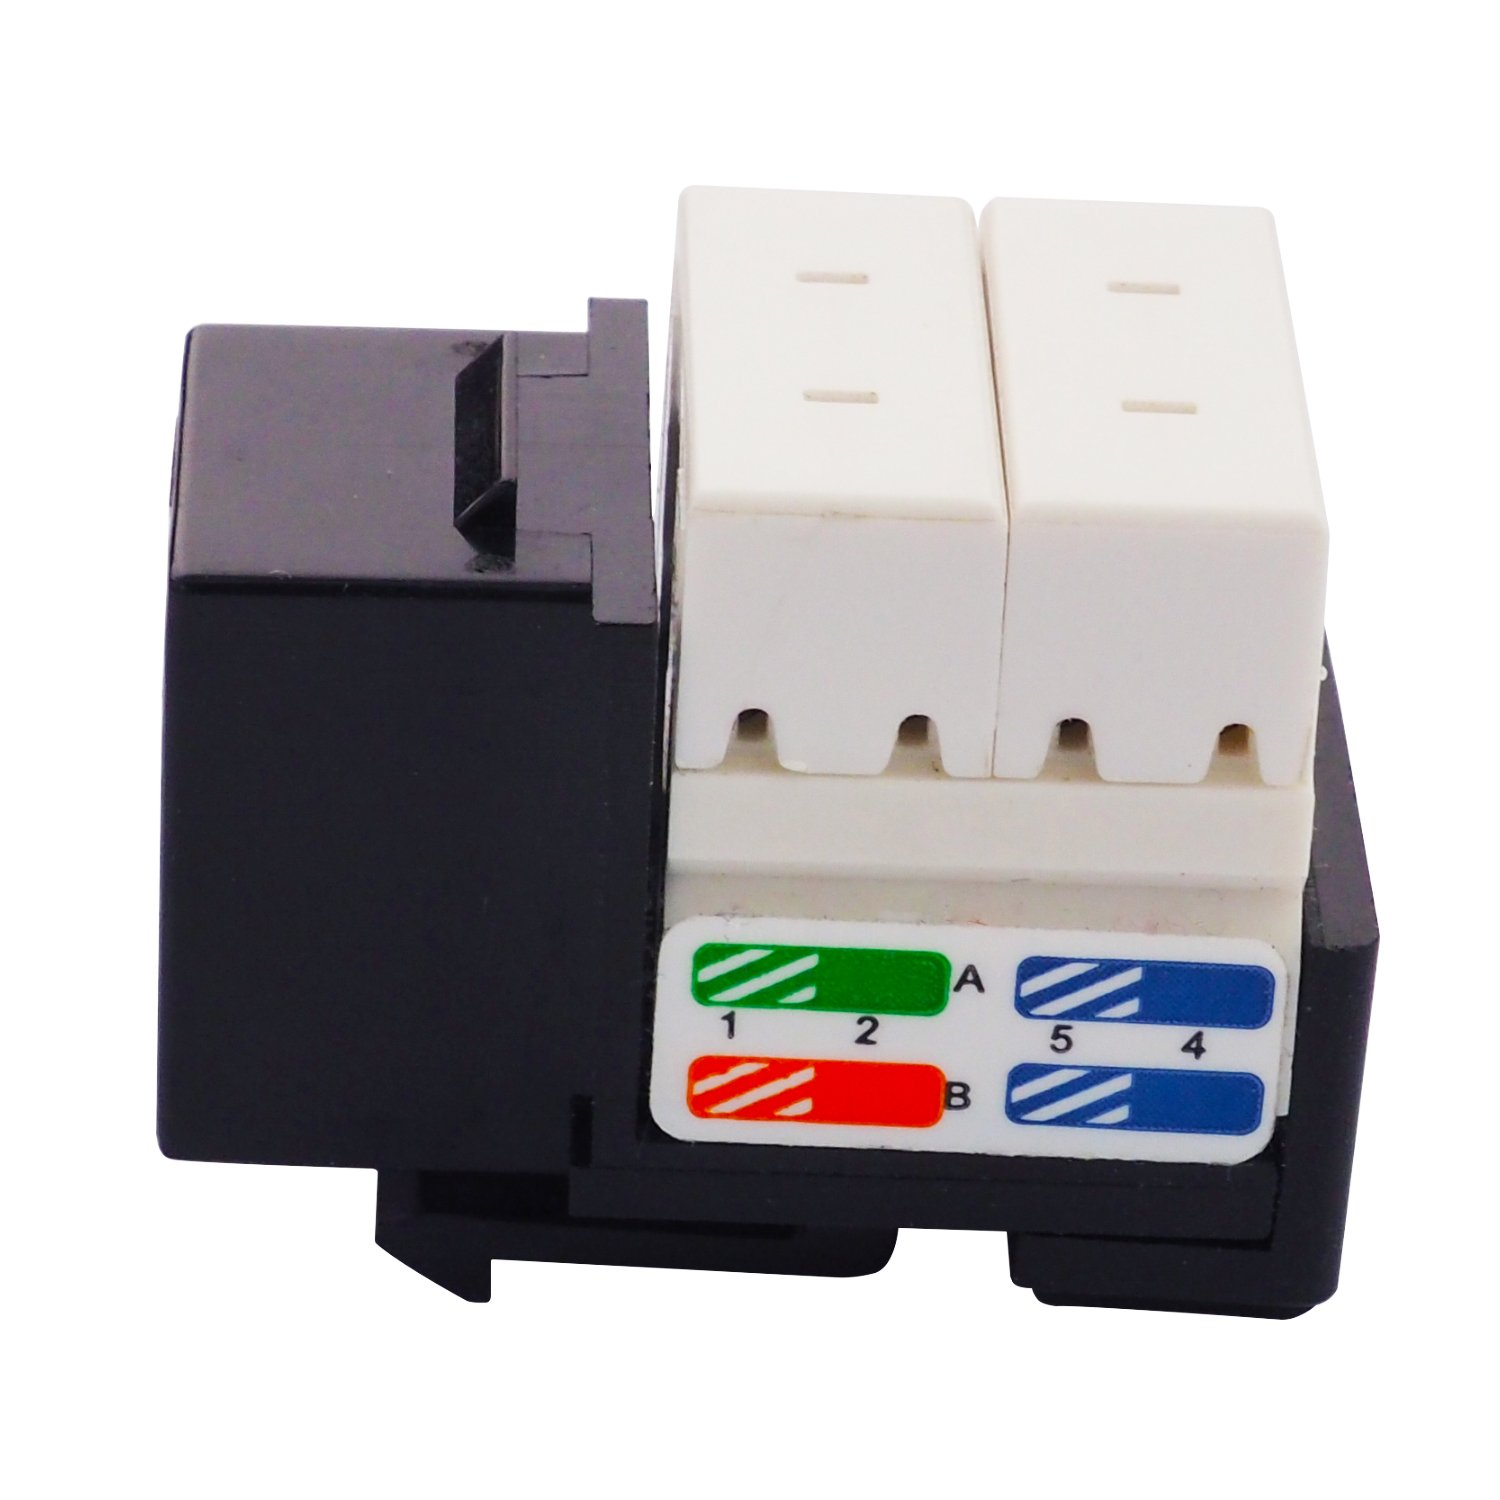 LINKOMM 50-Pack RJ45 Cat6A Slim Profile UTP Unshielded Keystone Jack with Punch Down Palm Holder Yellow